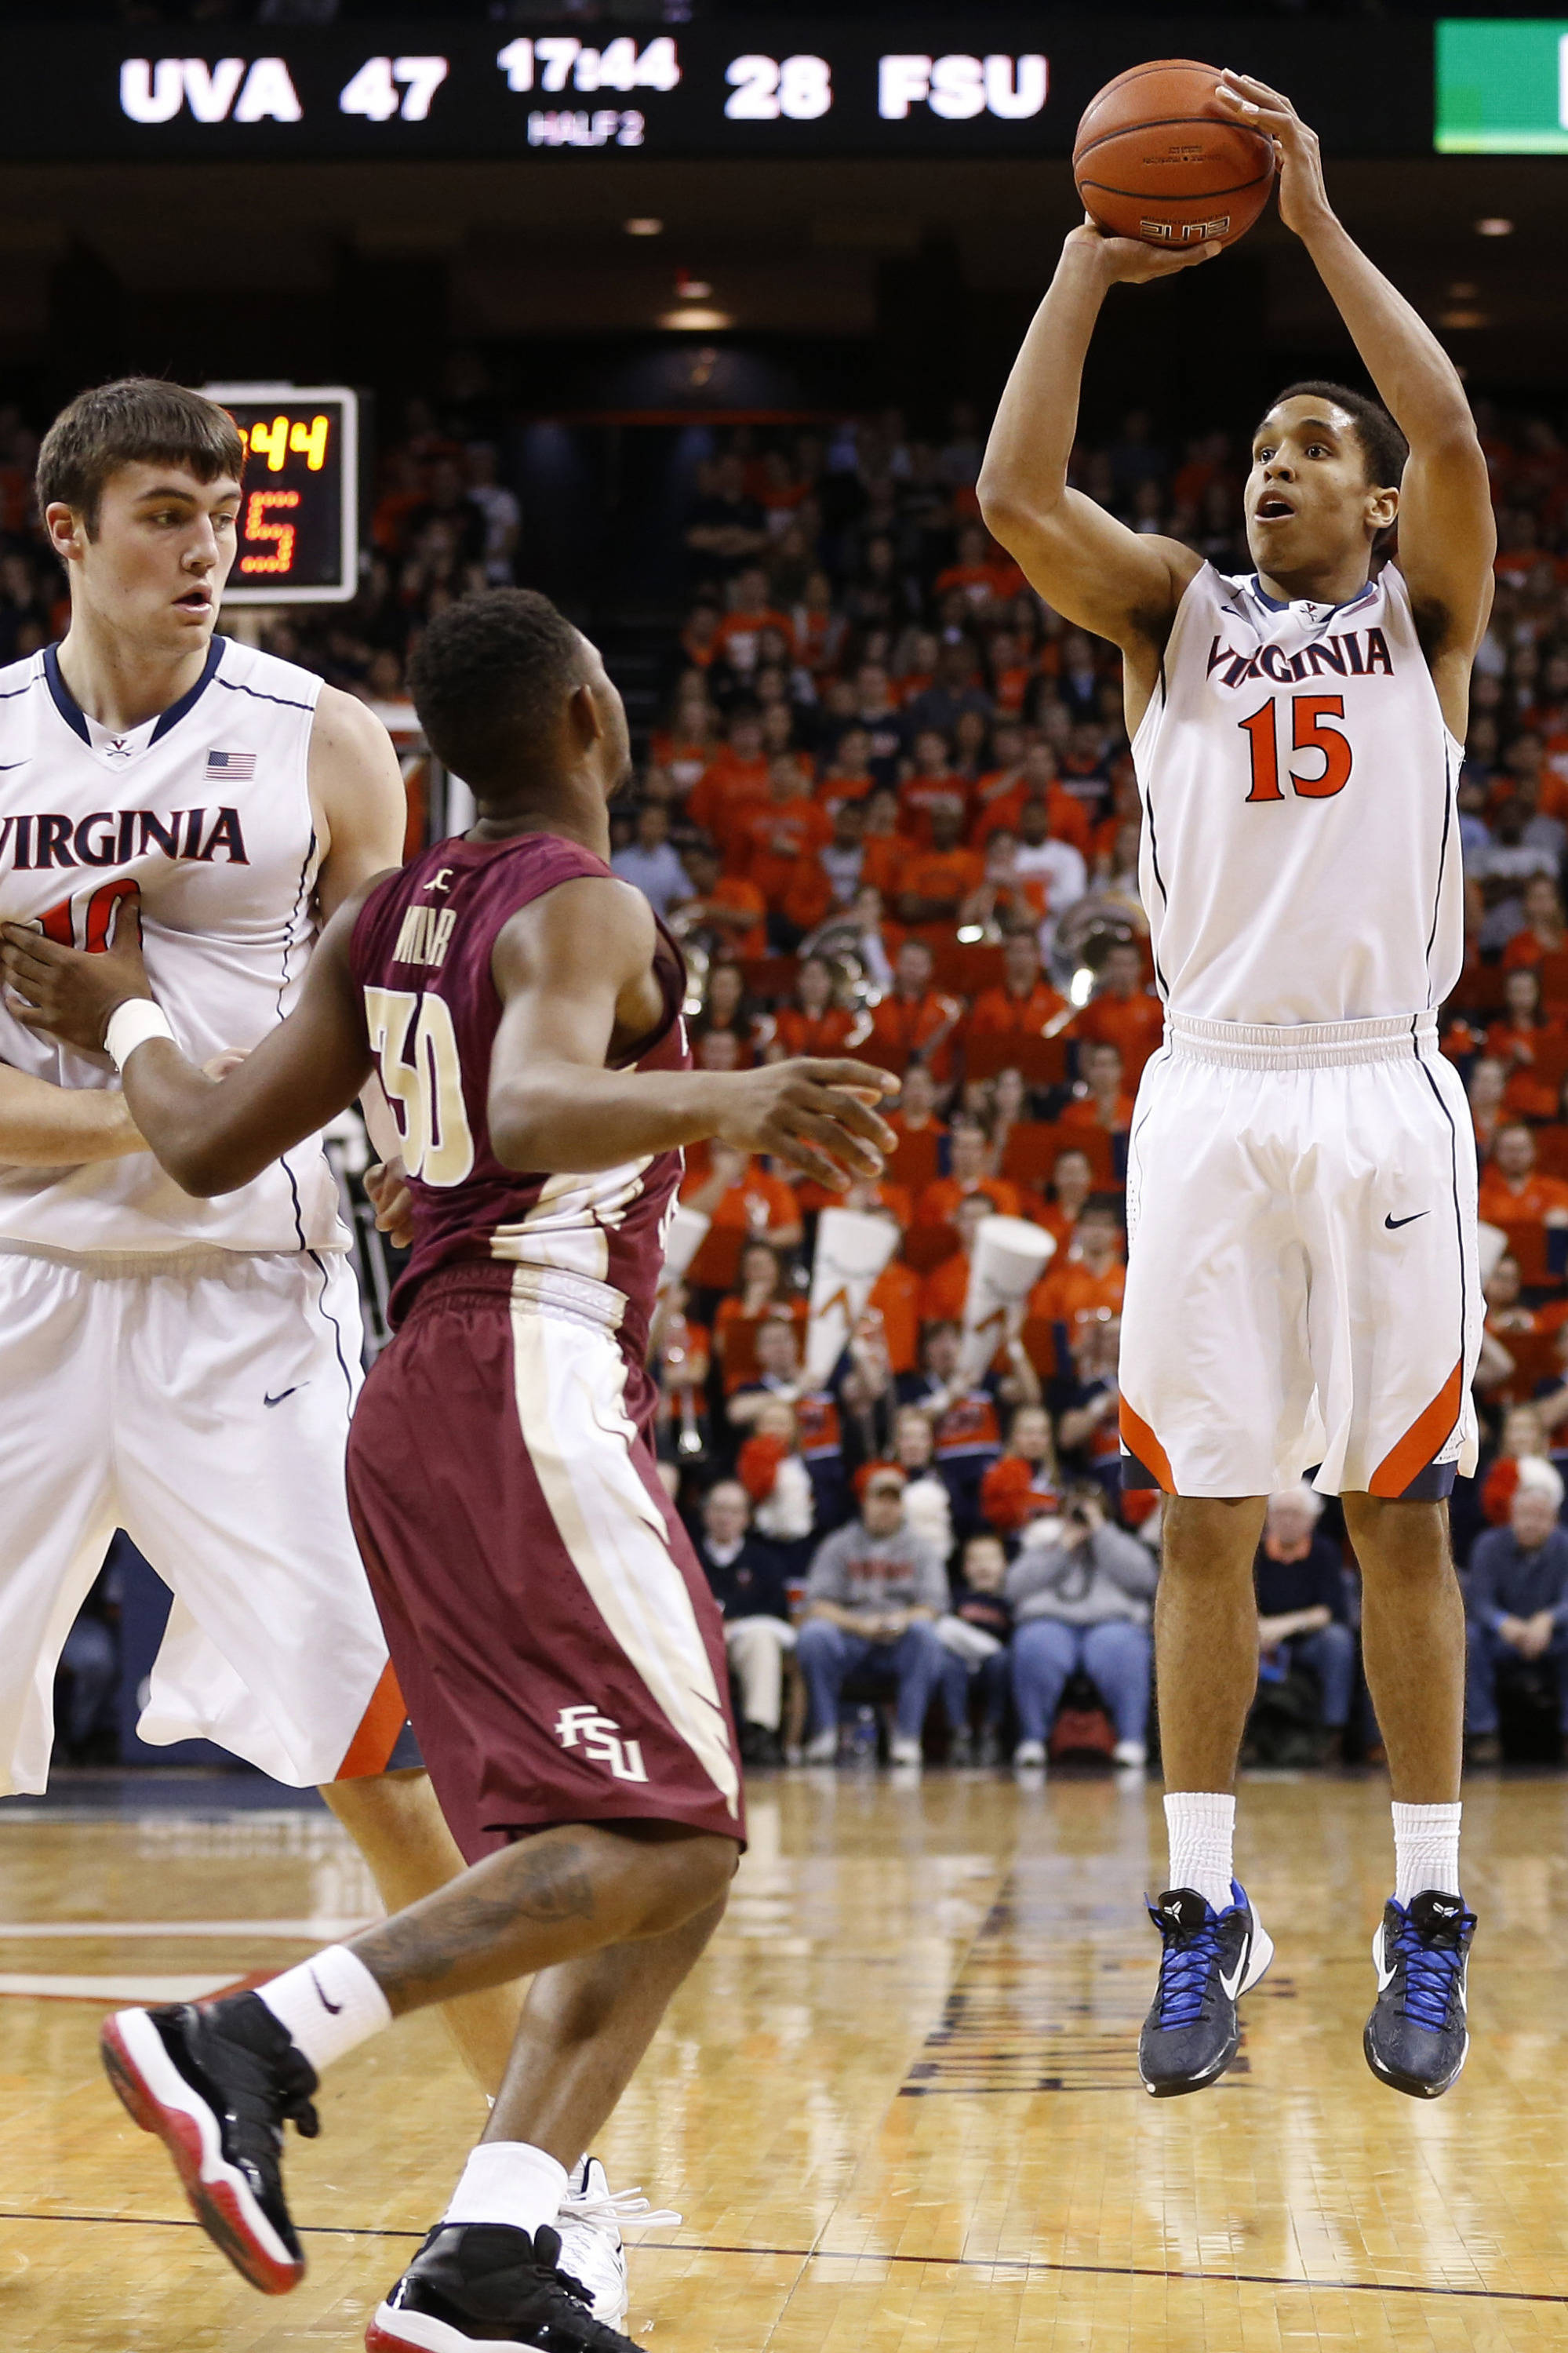 Jan 18, 2014; Charlottesville, VA, USA; Virginia Cavaliers guard Malcolm Brogdon (15) shoots the ball over Florida State Seminoles guard Ian Miller (30) in the second half at John Paul Jones Arena. The Cavaliers won 78-66. Mandatory Credit: Geoff Burke-USA TODAY Sports